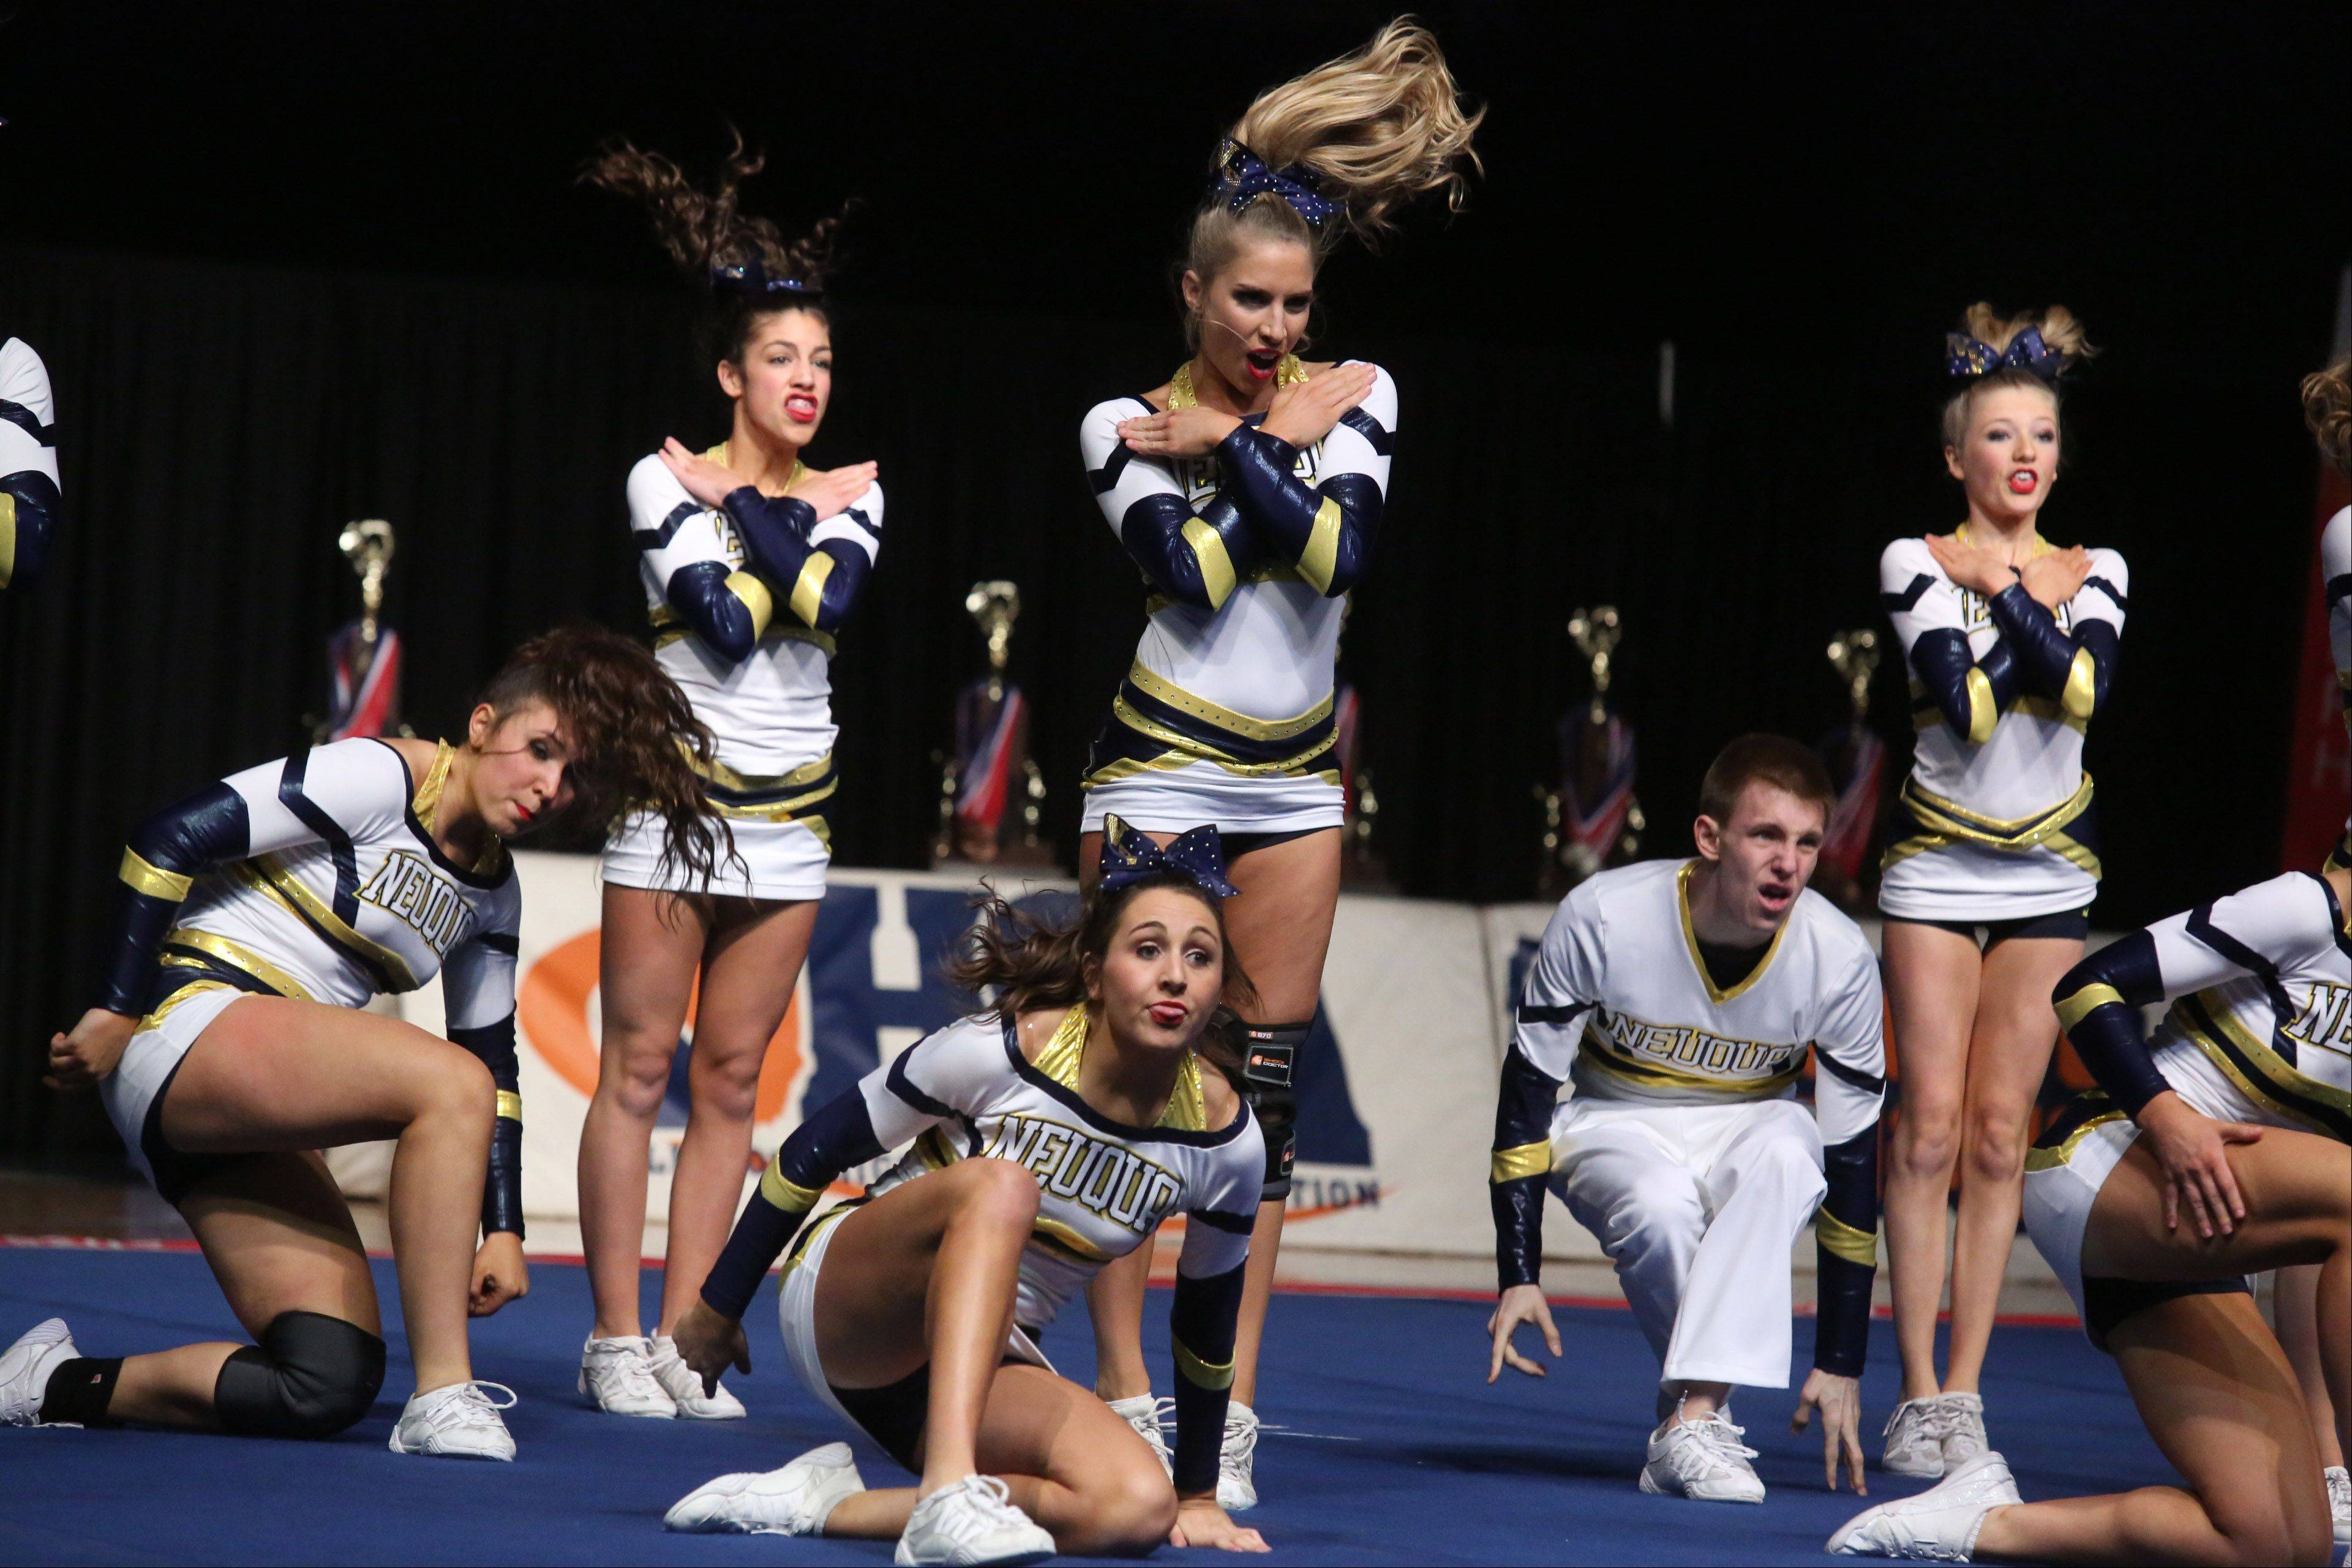 Neuqua Valley High School�s cheer team performs in the large team category.